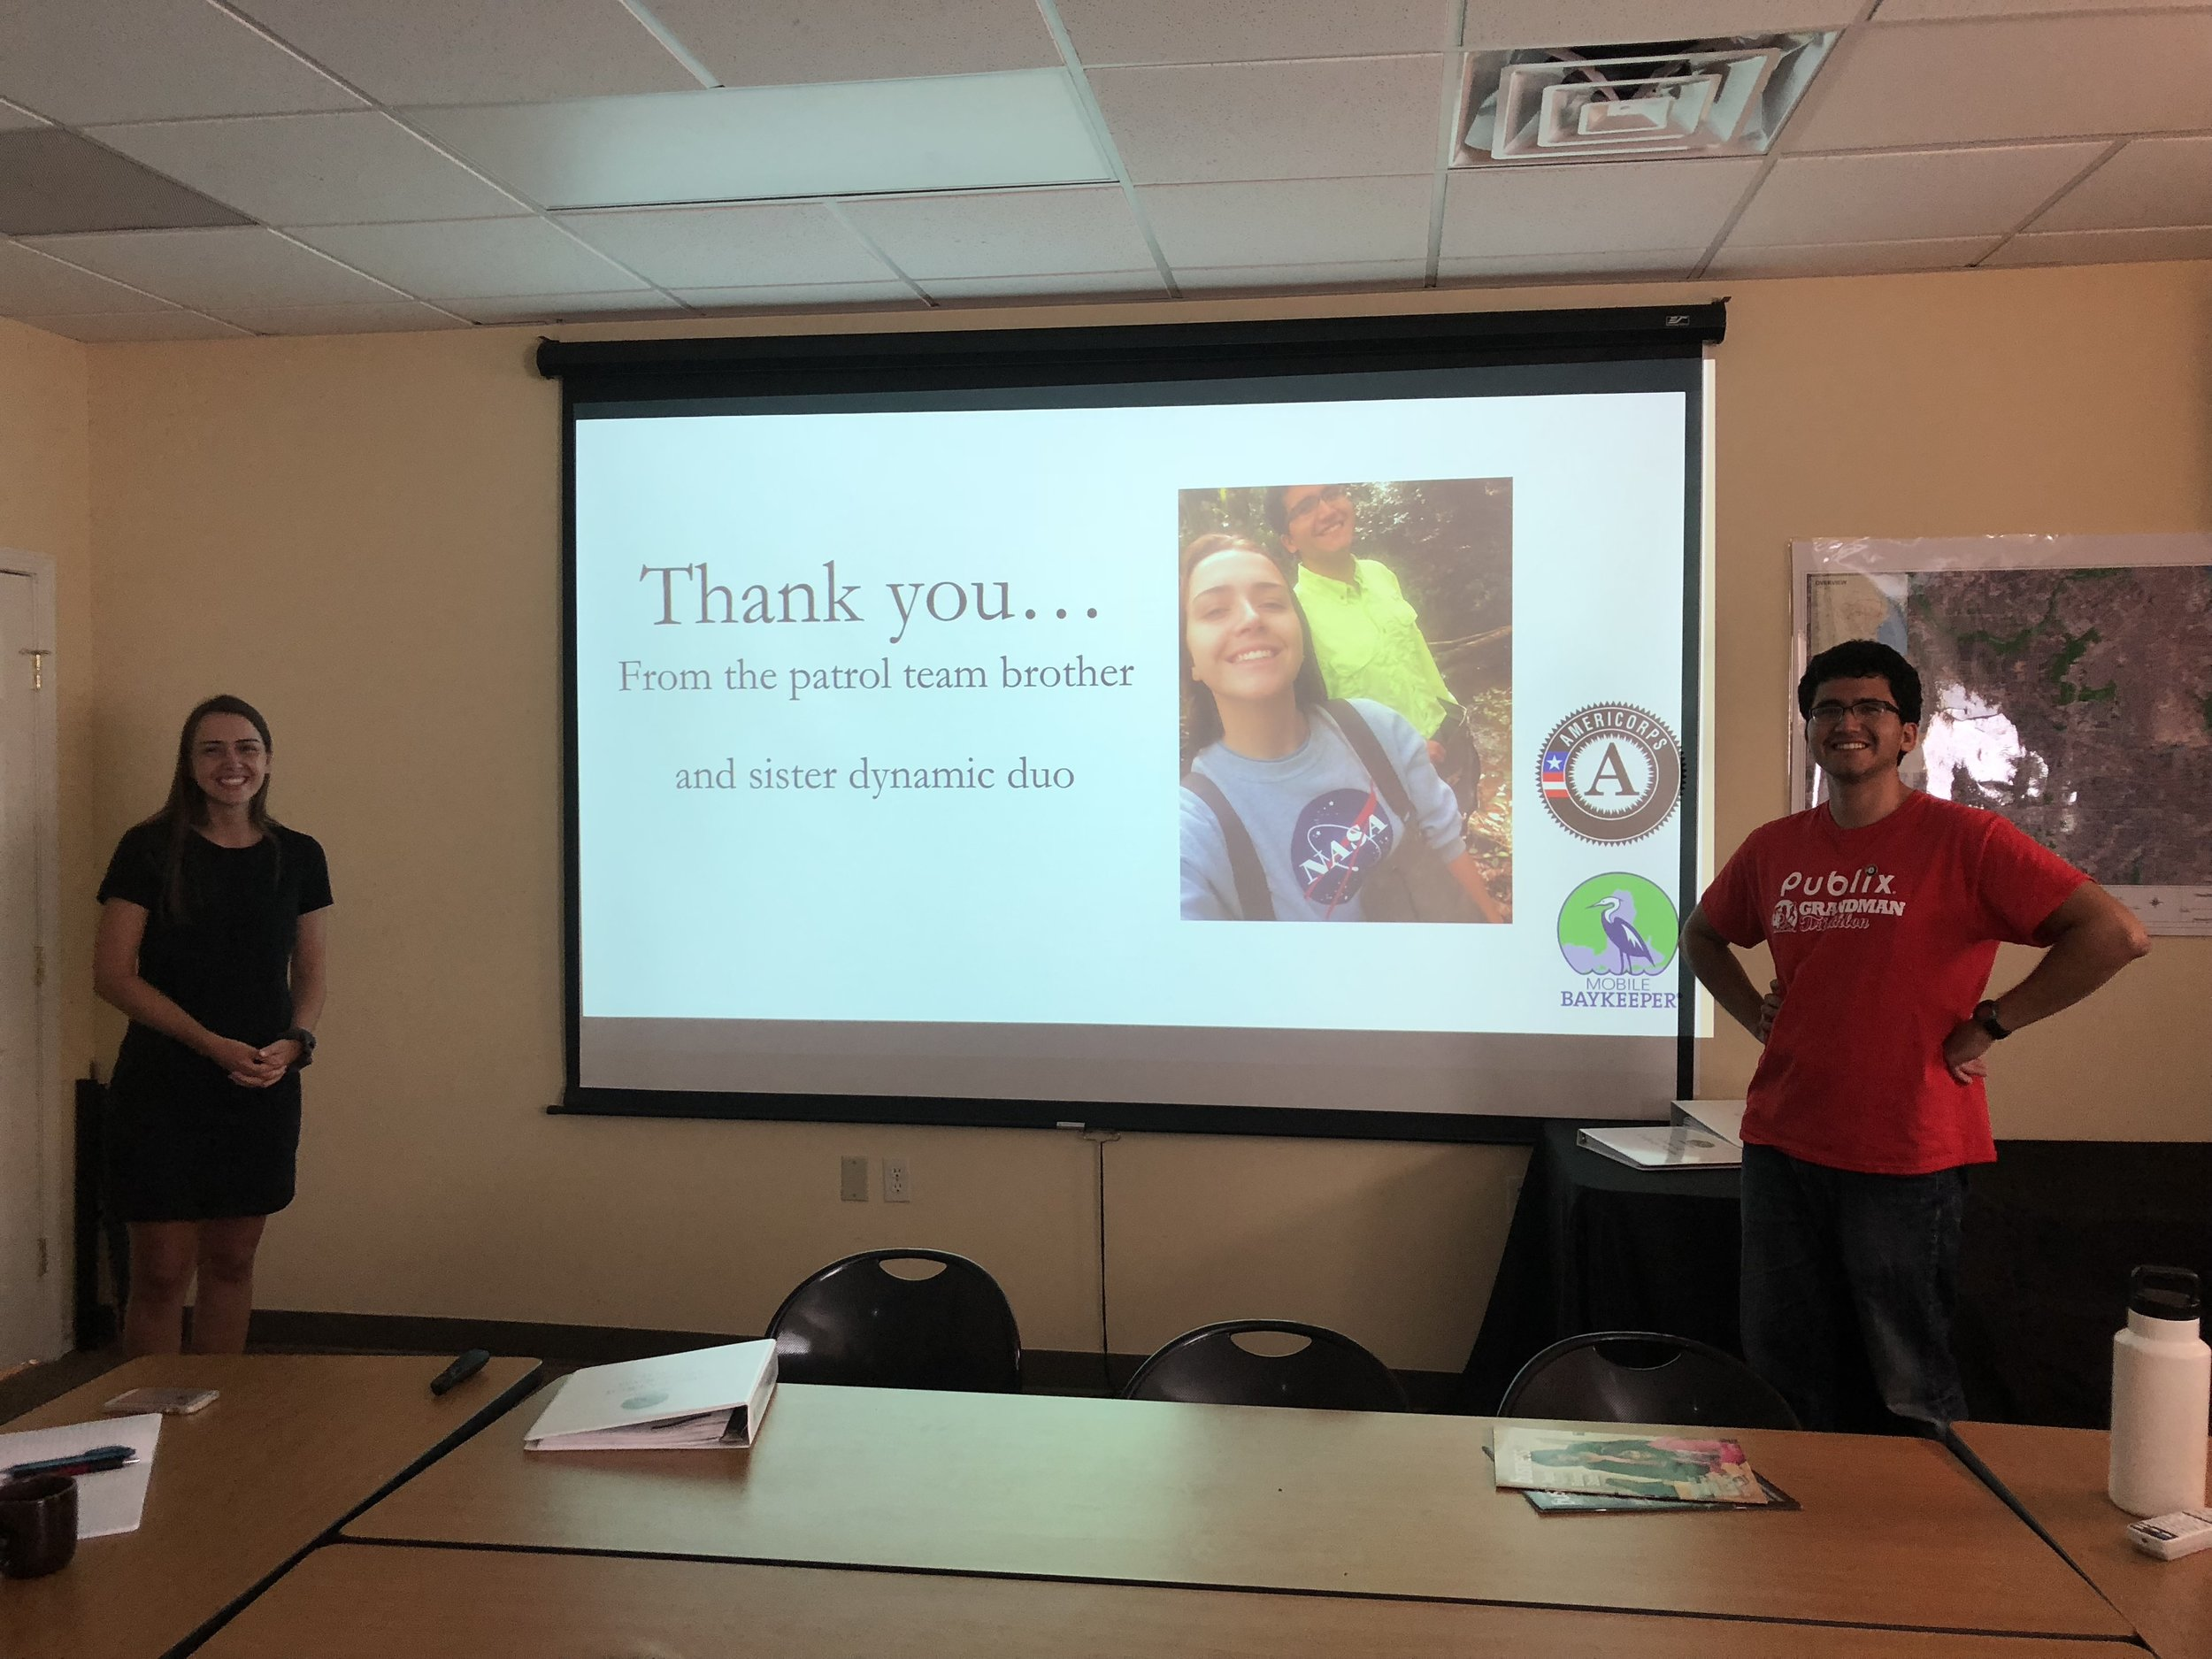 Ellie Mallon and Diego Calderon-Arrieta finished up their term with a final presentation to Baykeeper staff.